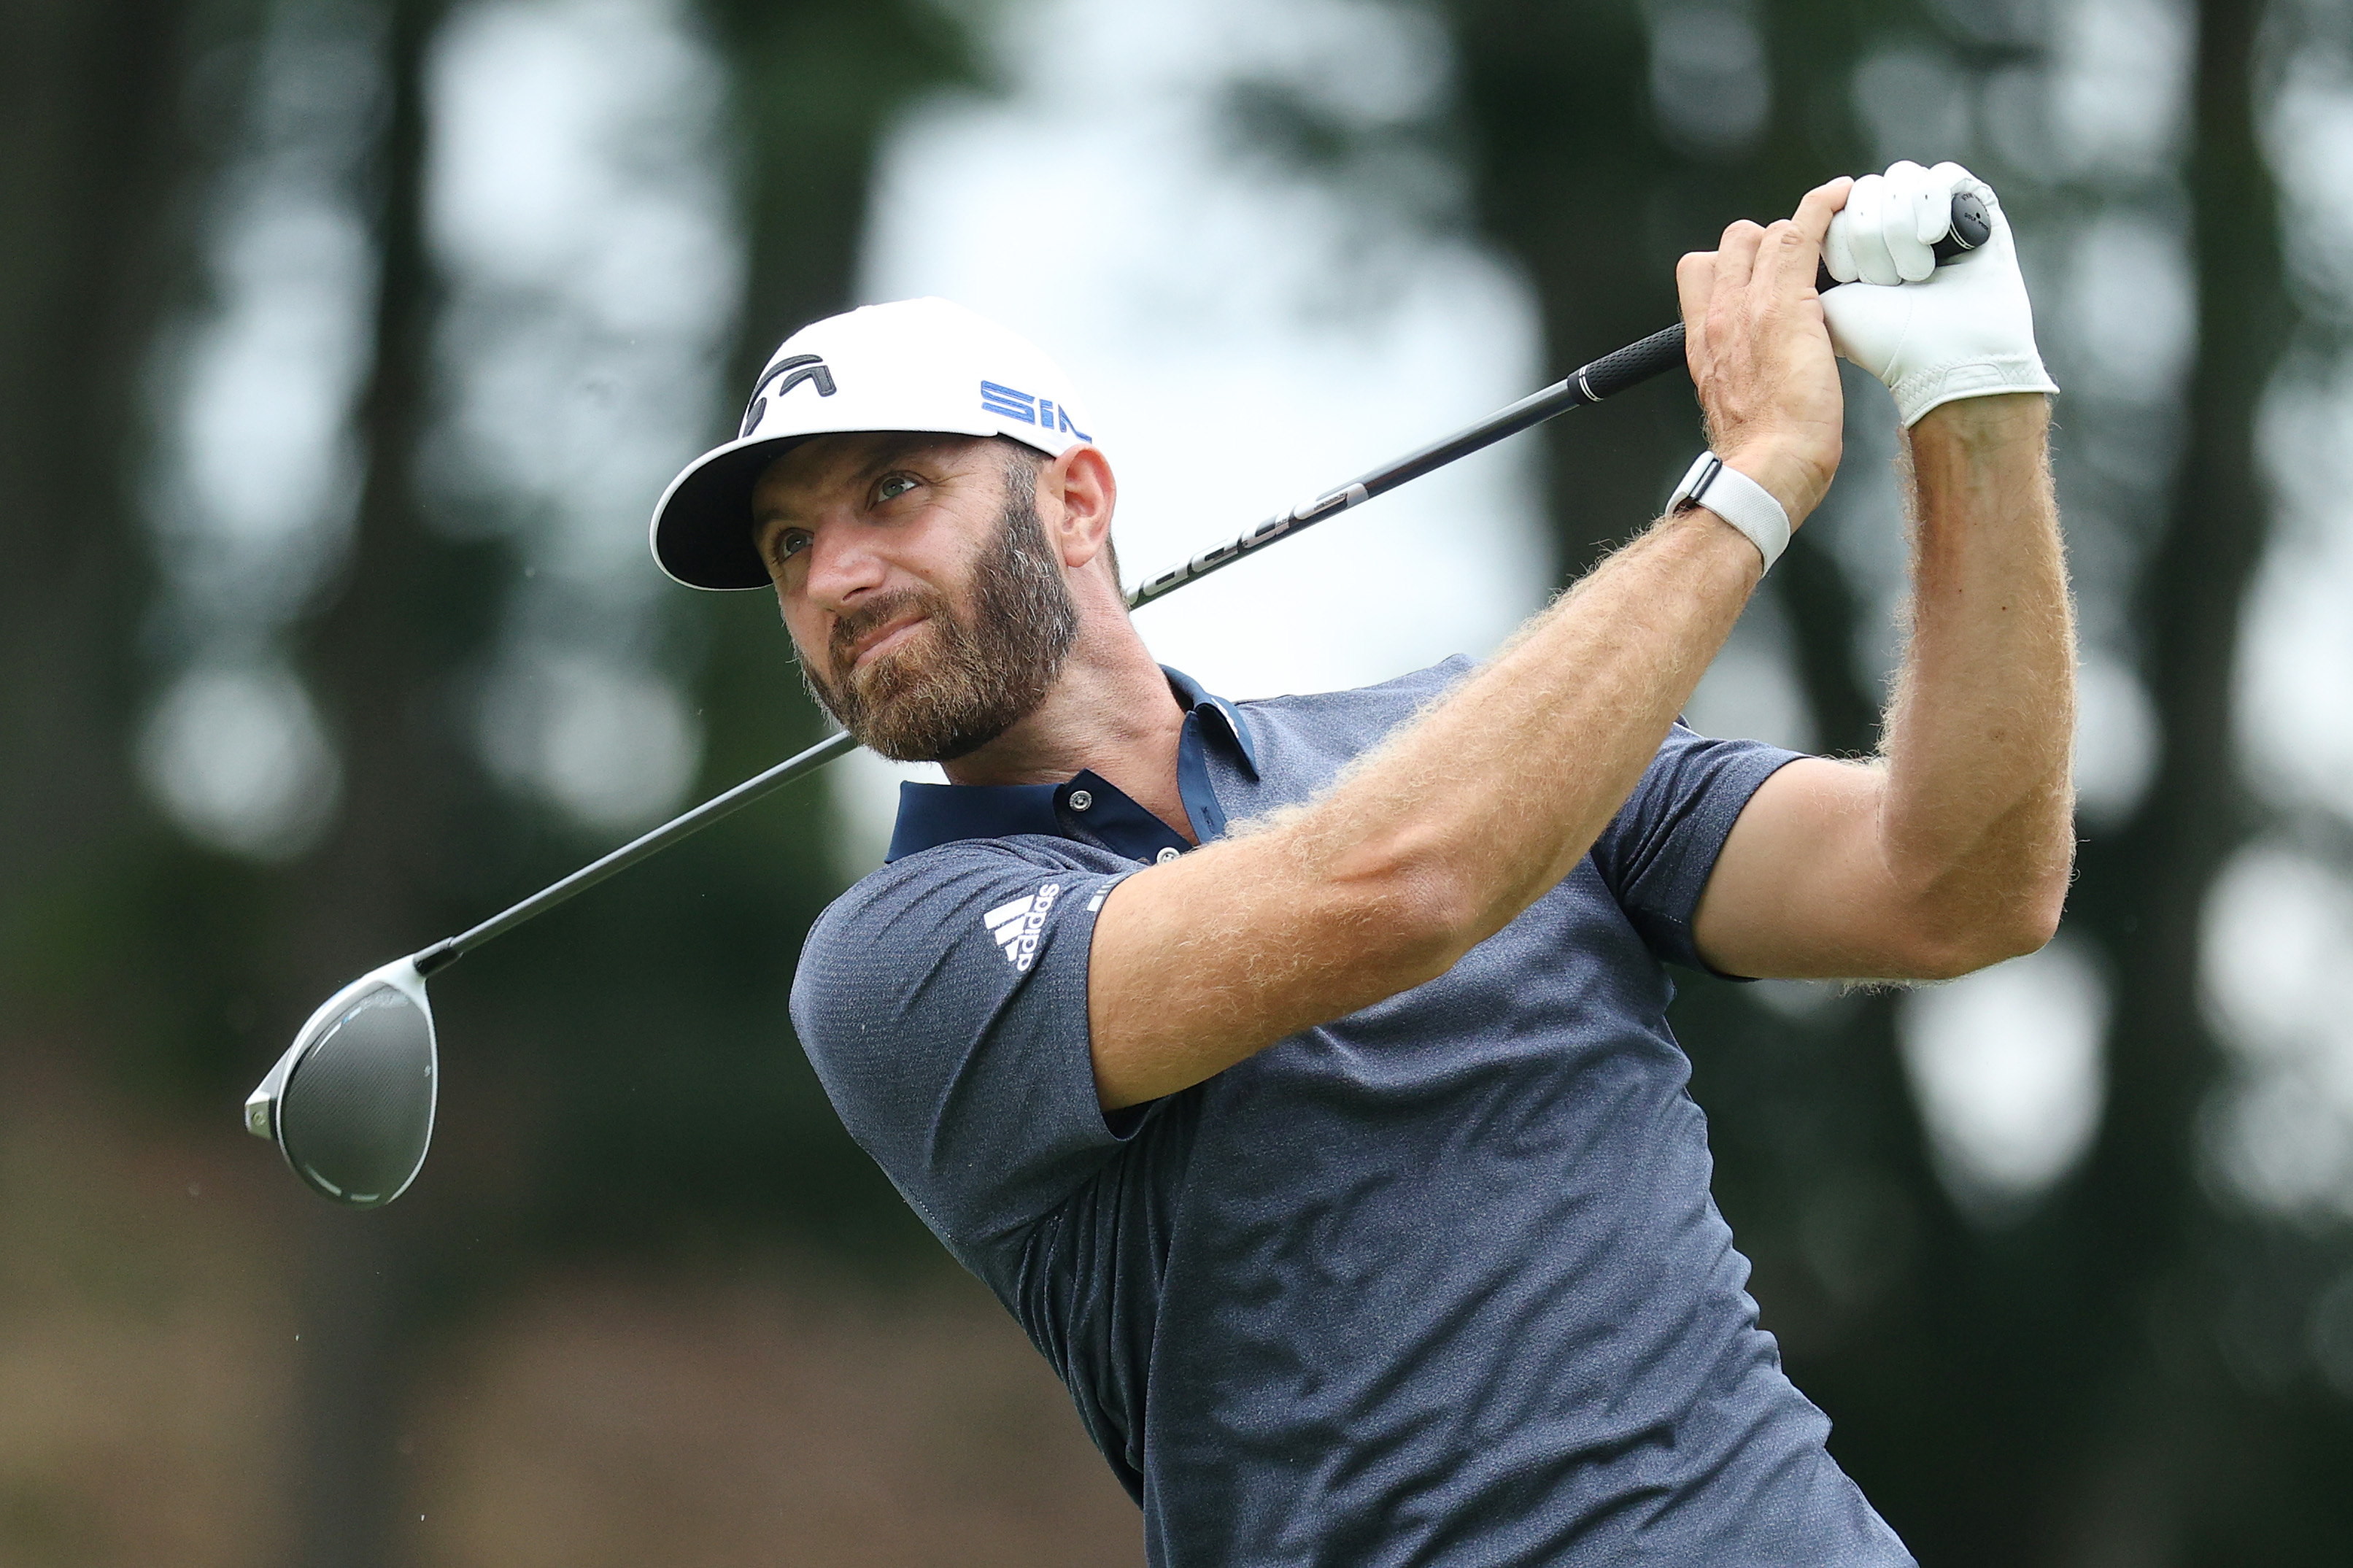 Dustin Johnson is a 20-time PGA Tour winner, but his path to the top was riddled with drug use and major championship heartbreak.